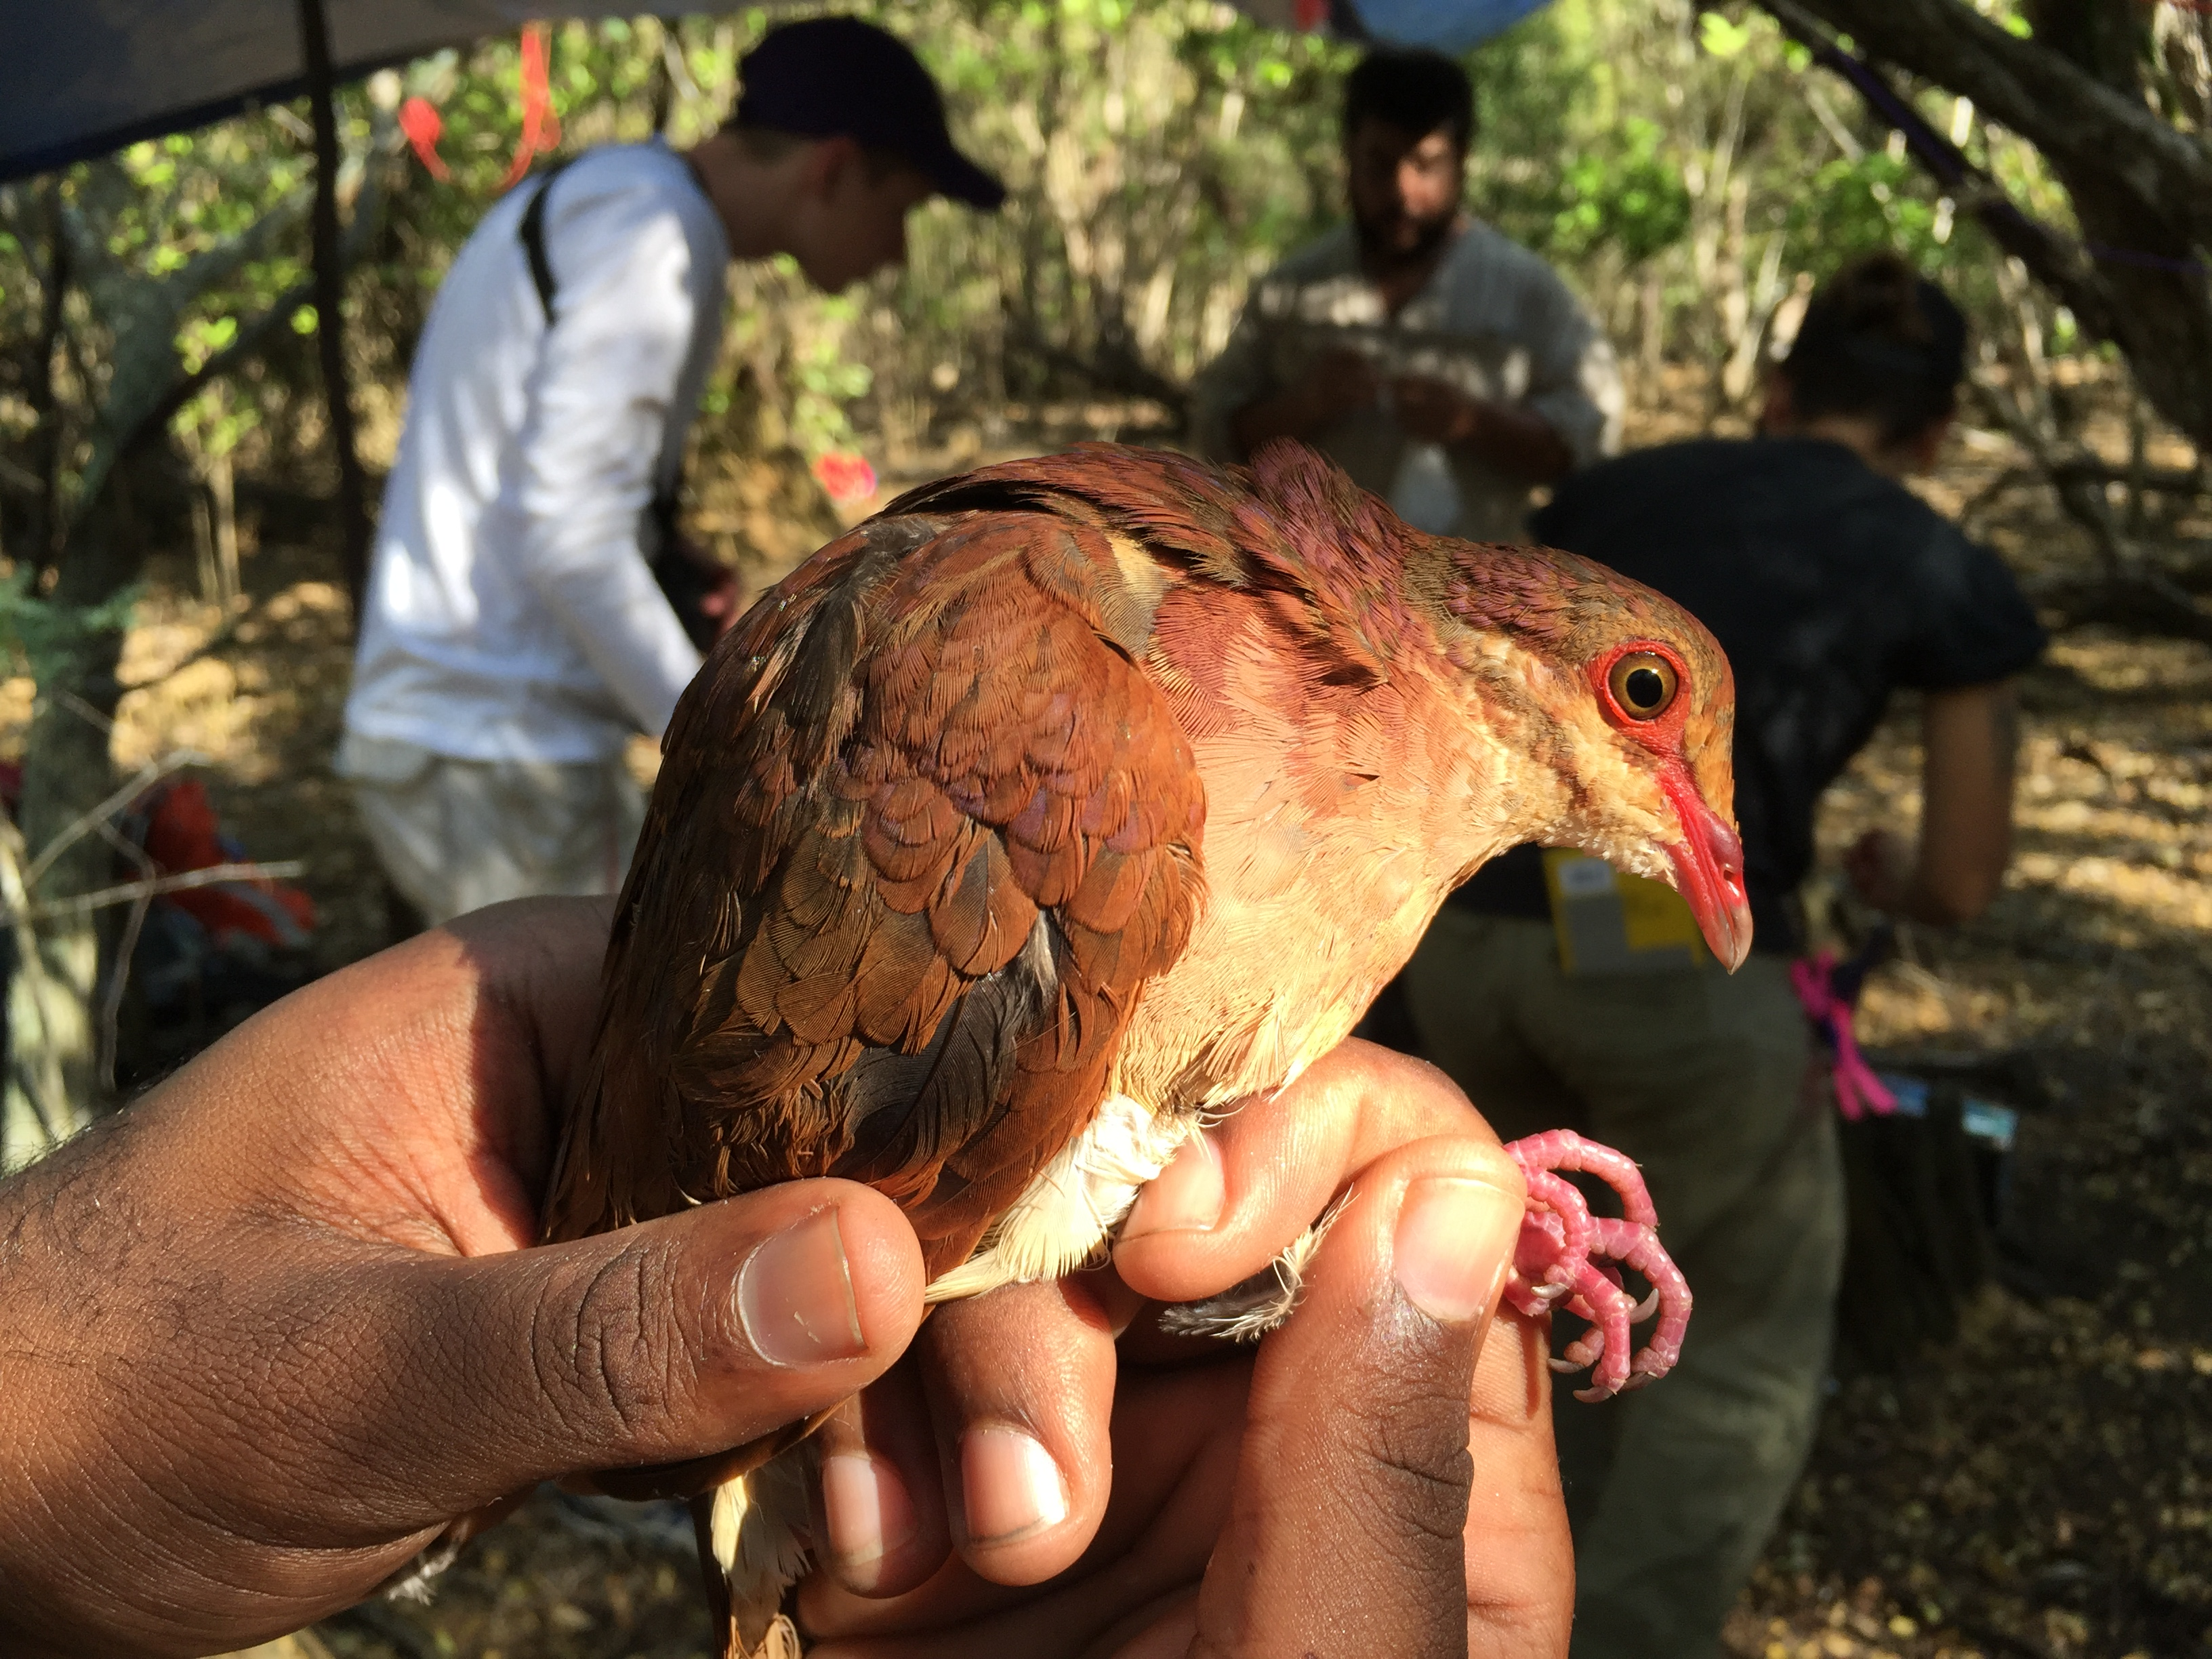 A ruddy quail dove being held in someone's hand